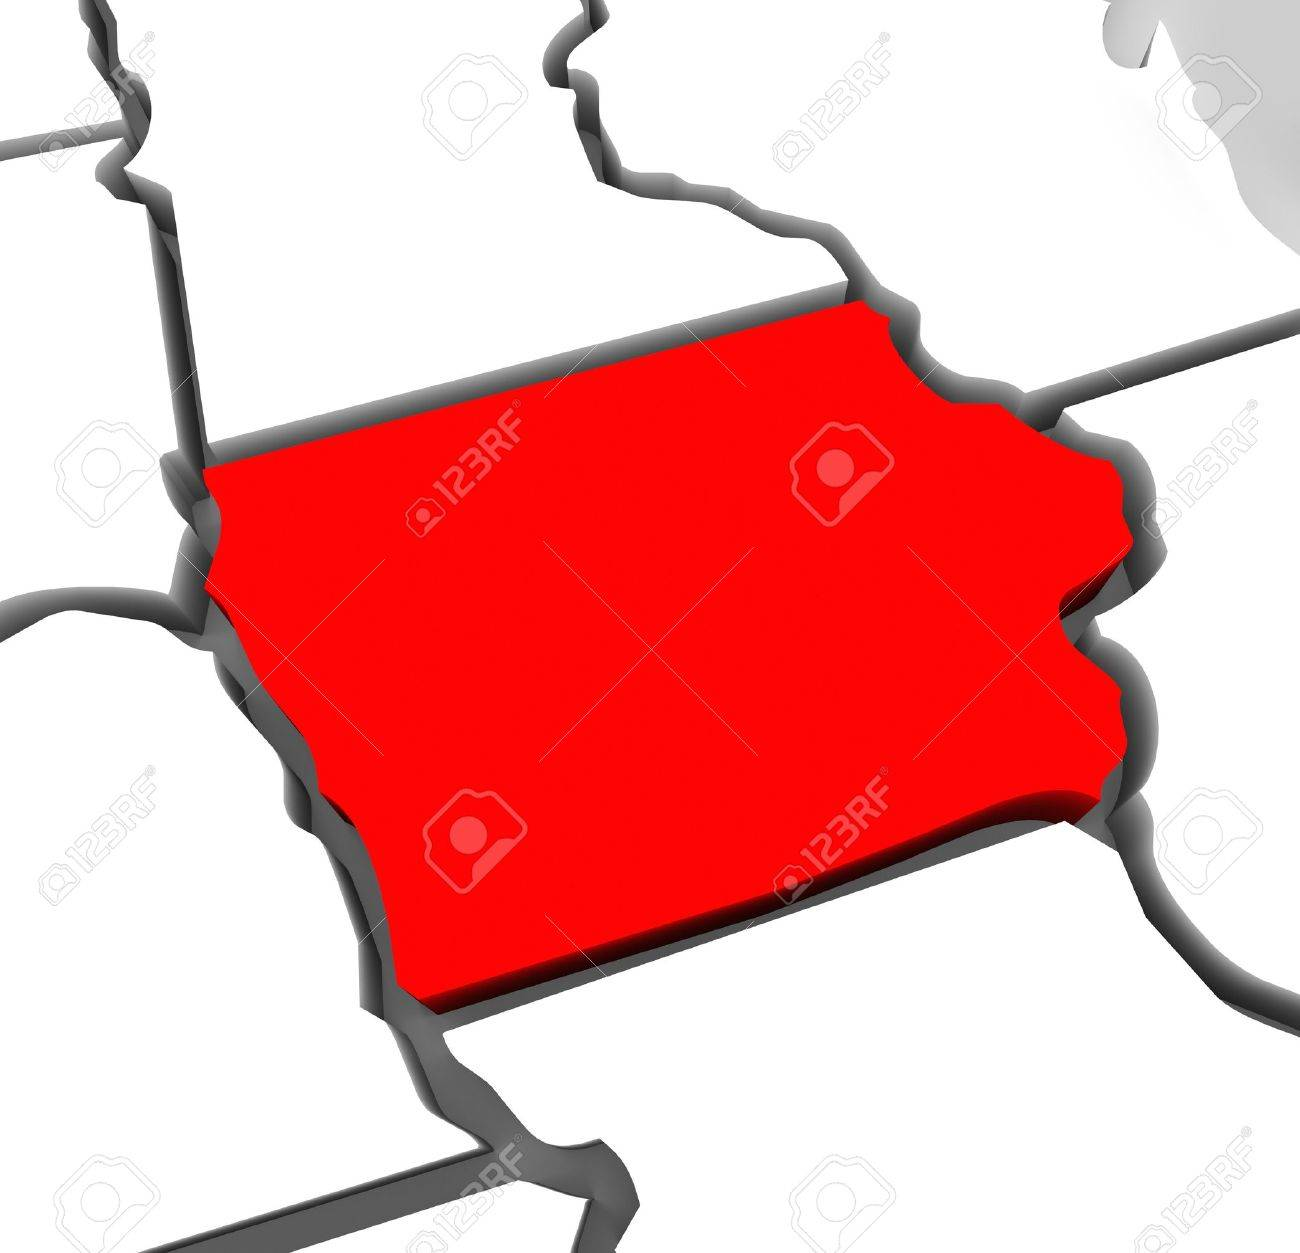 A Red Abstract State Map Of Iowa A D Render Symbolizing - United states map iowa